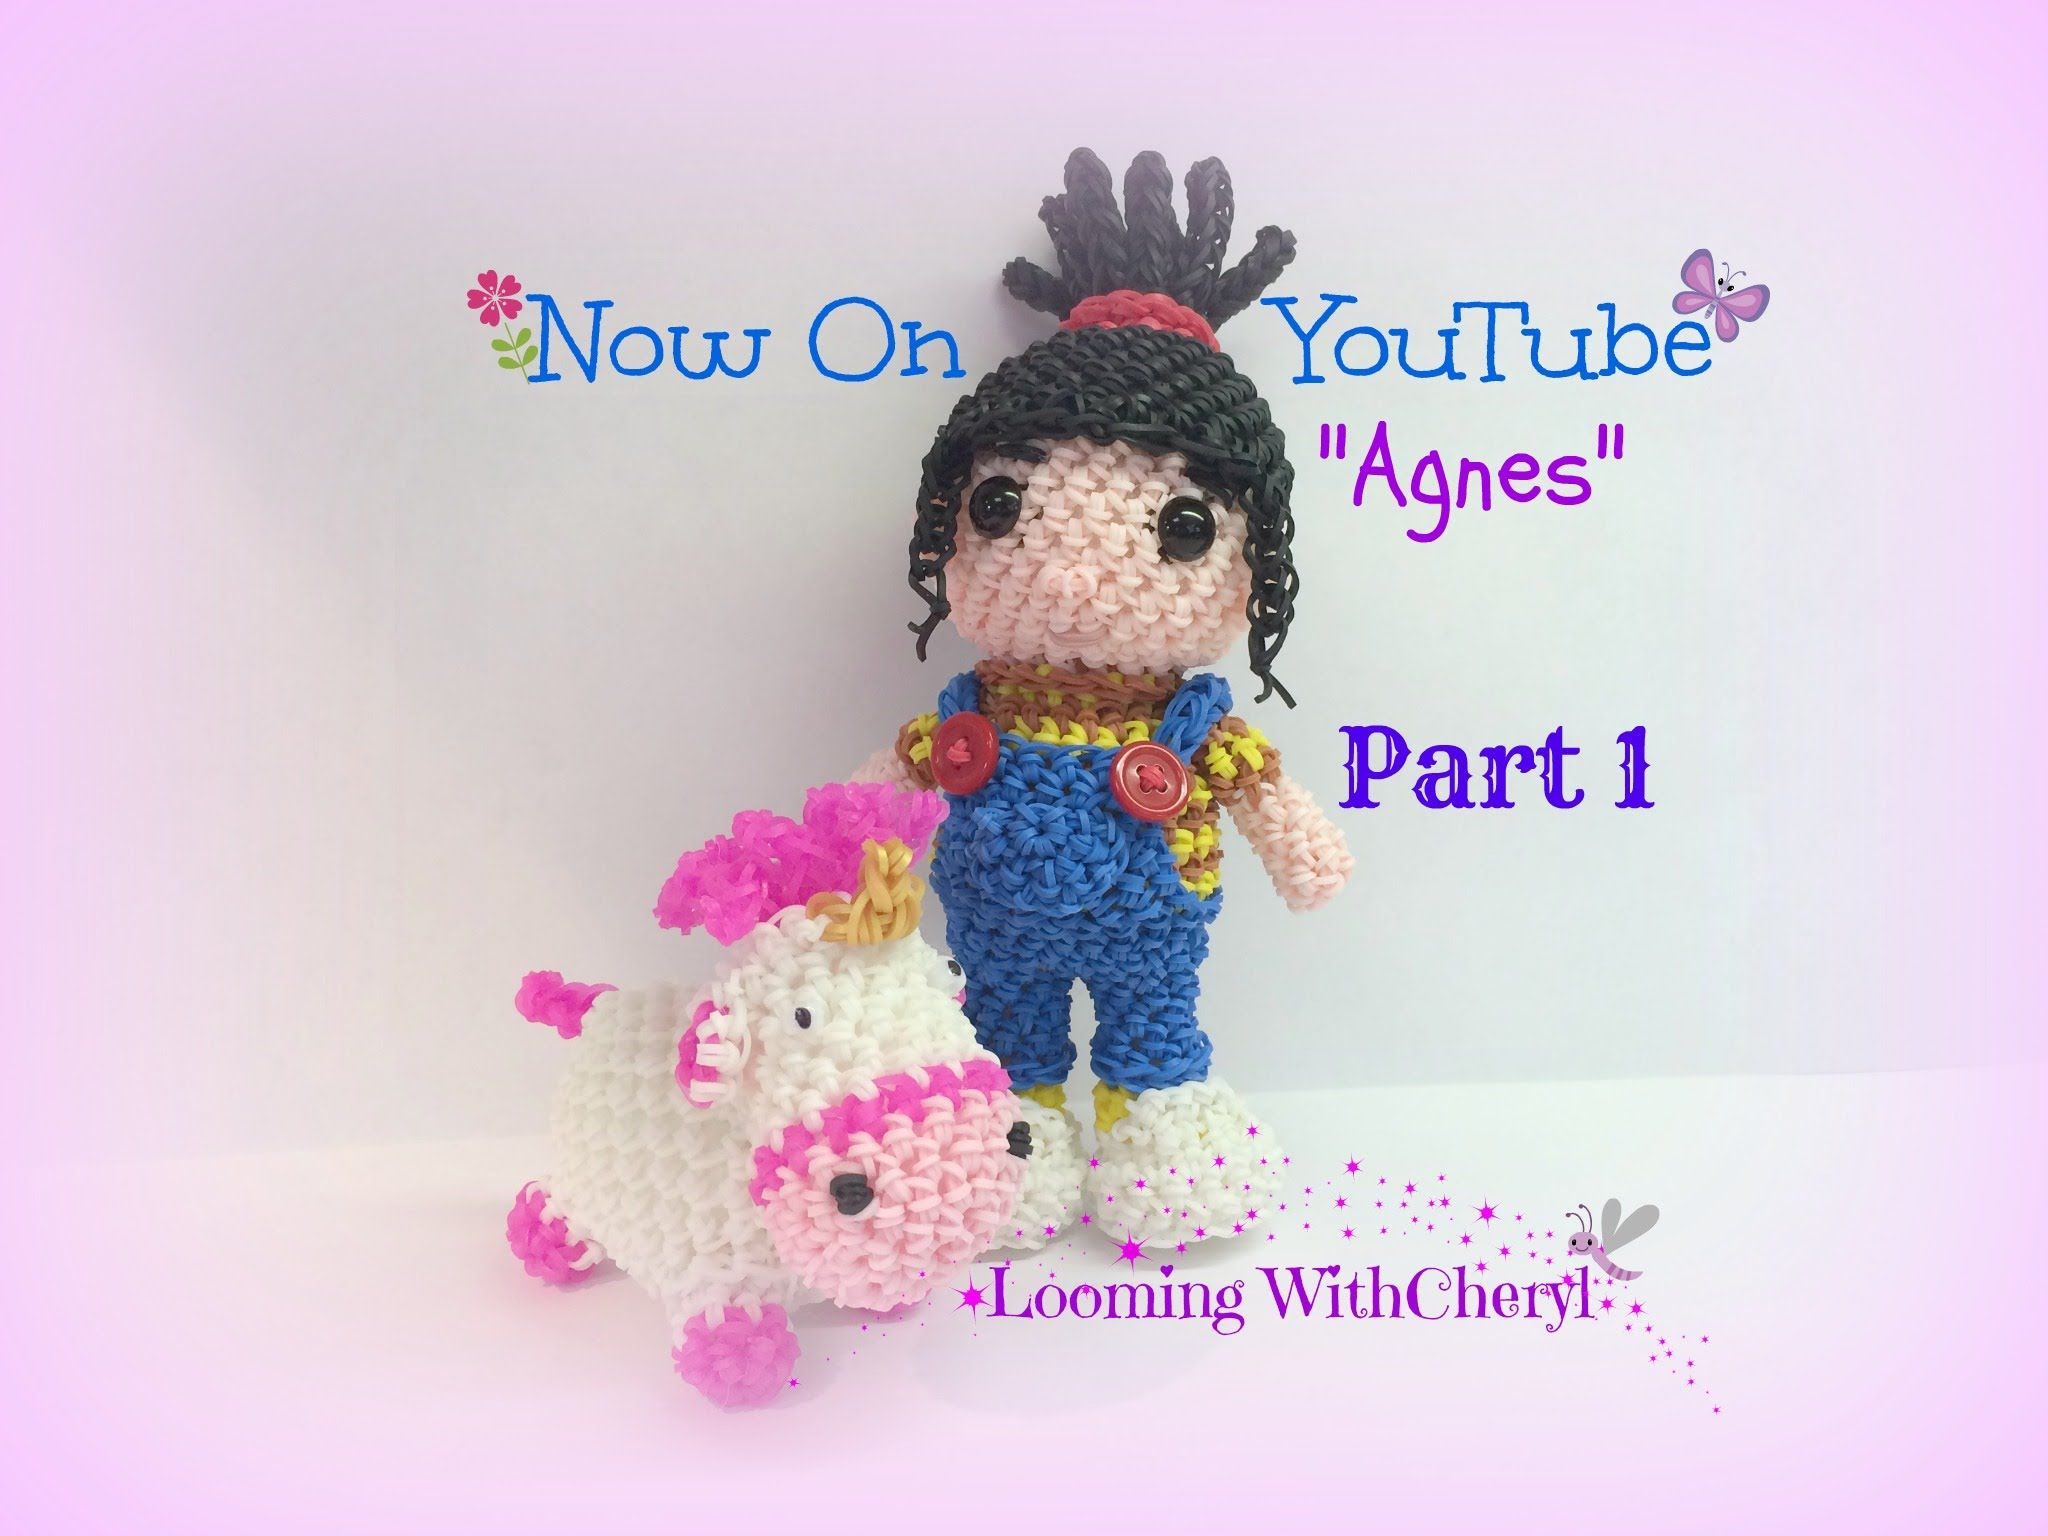 Amigurumi Loom Patterns : Rainbow loom agnes doll part 1 of 2 now on youtube loomigurumi